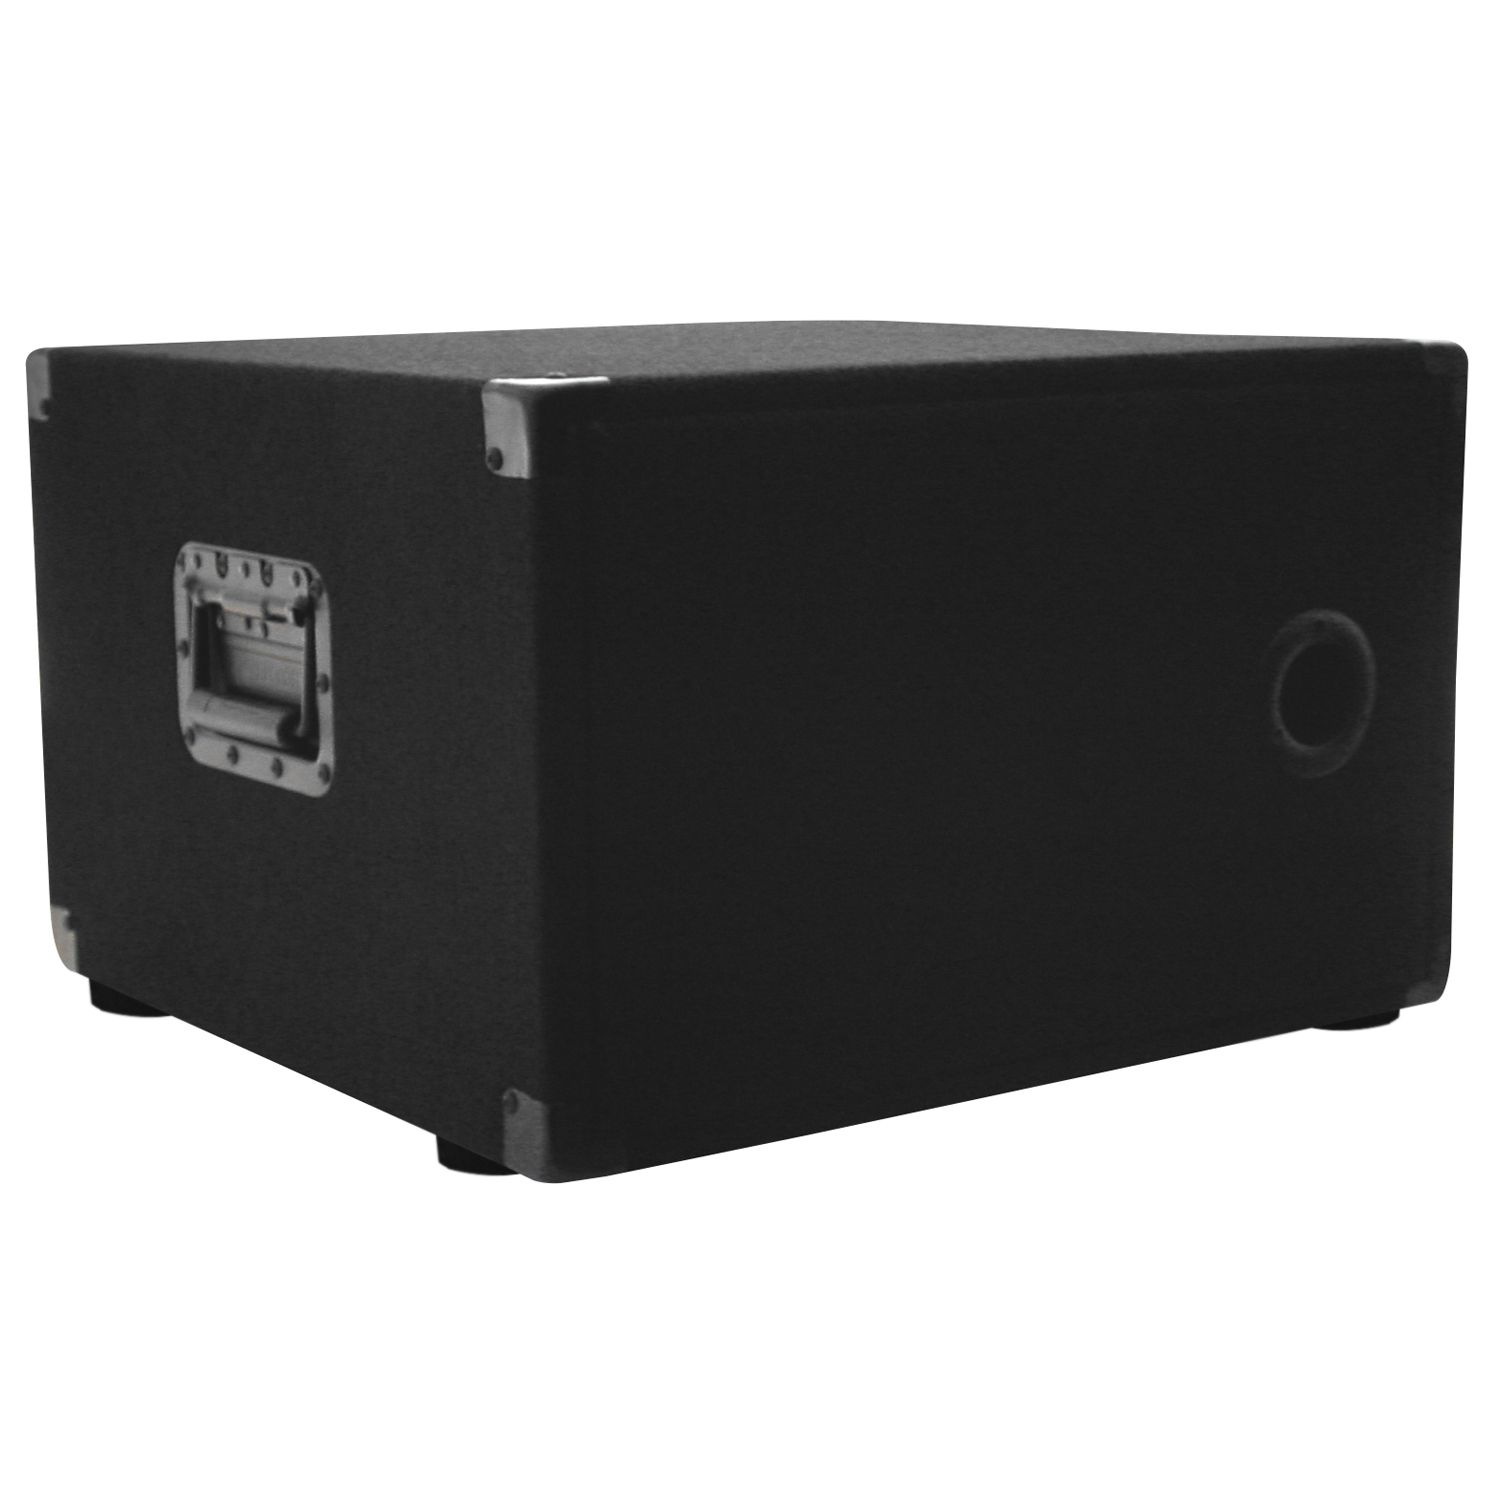 6U Carpet Amp Rack Case